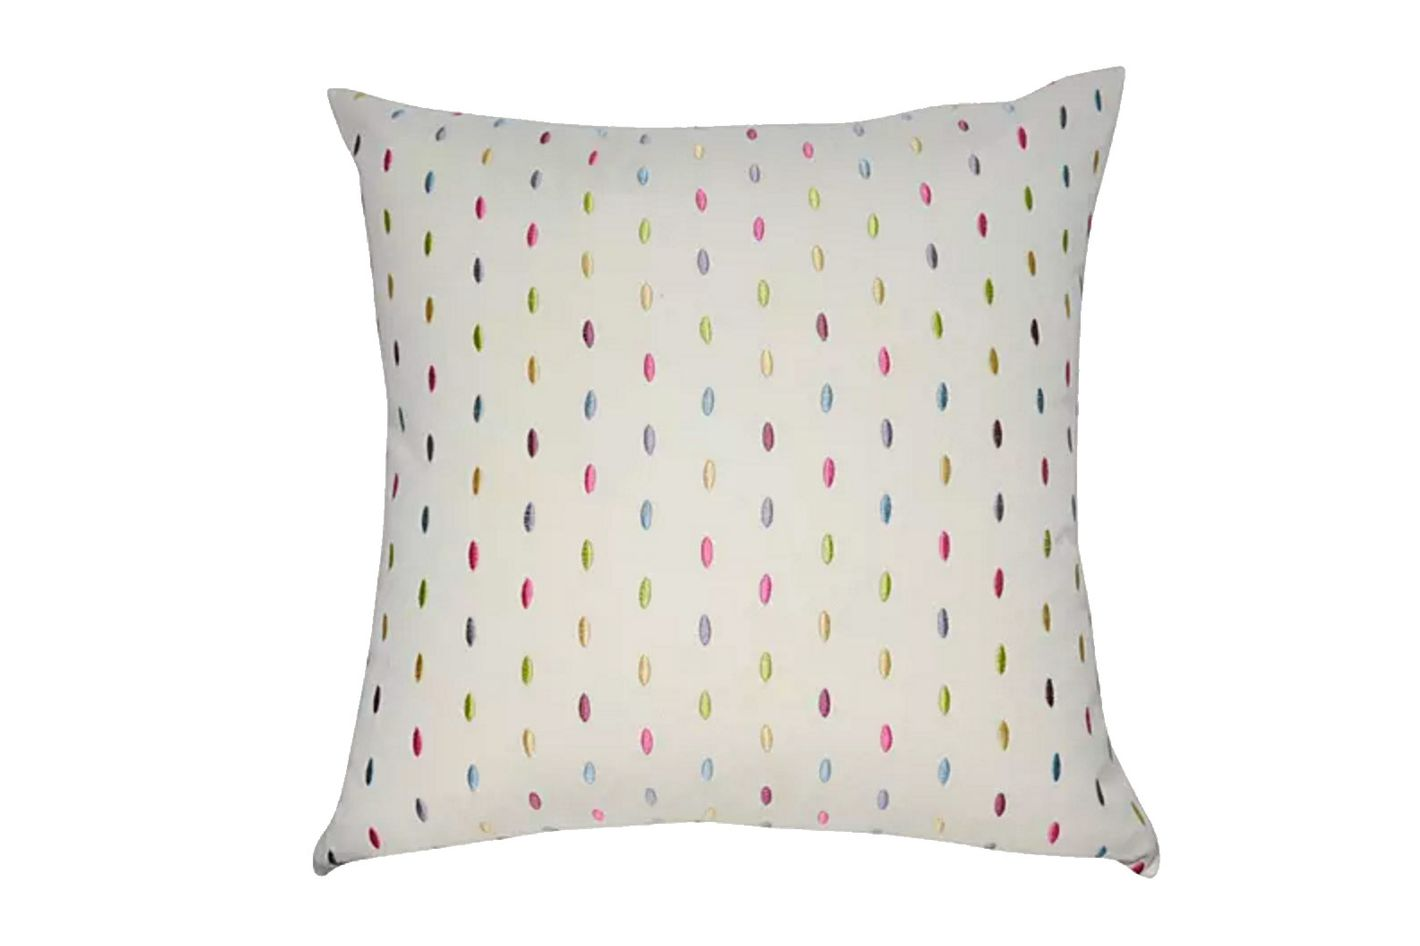 Loom and Mill Polka Dot Decorative Throw Pillow